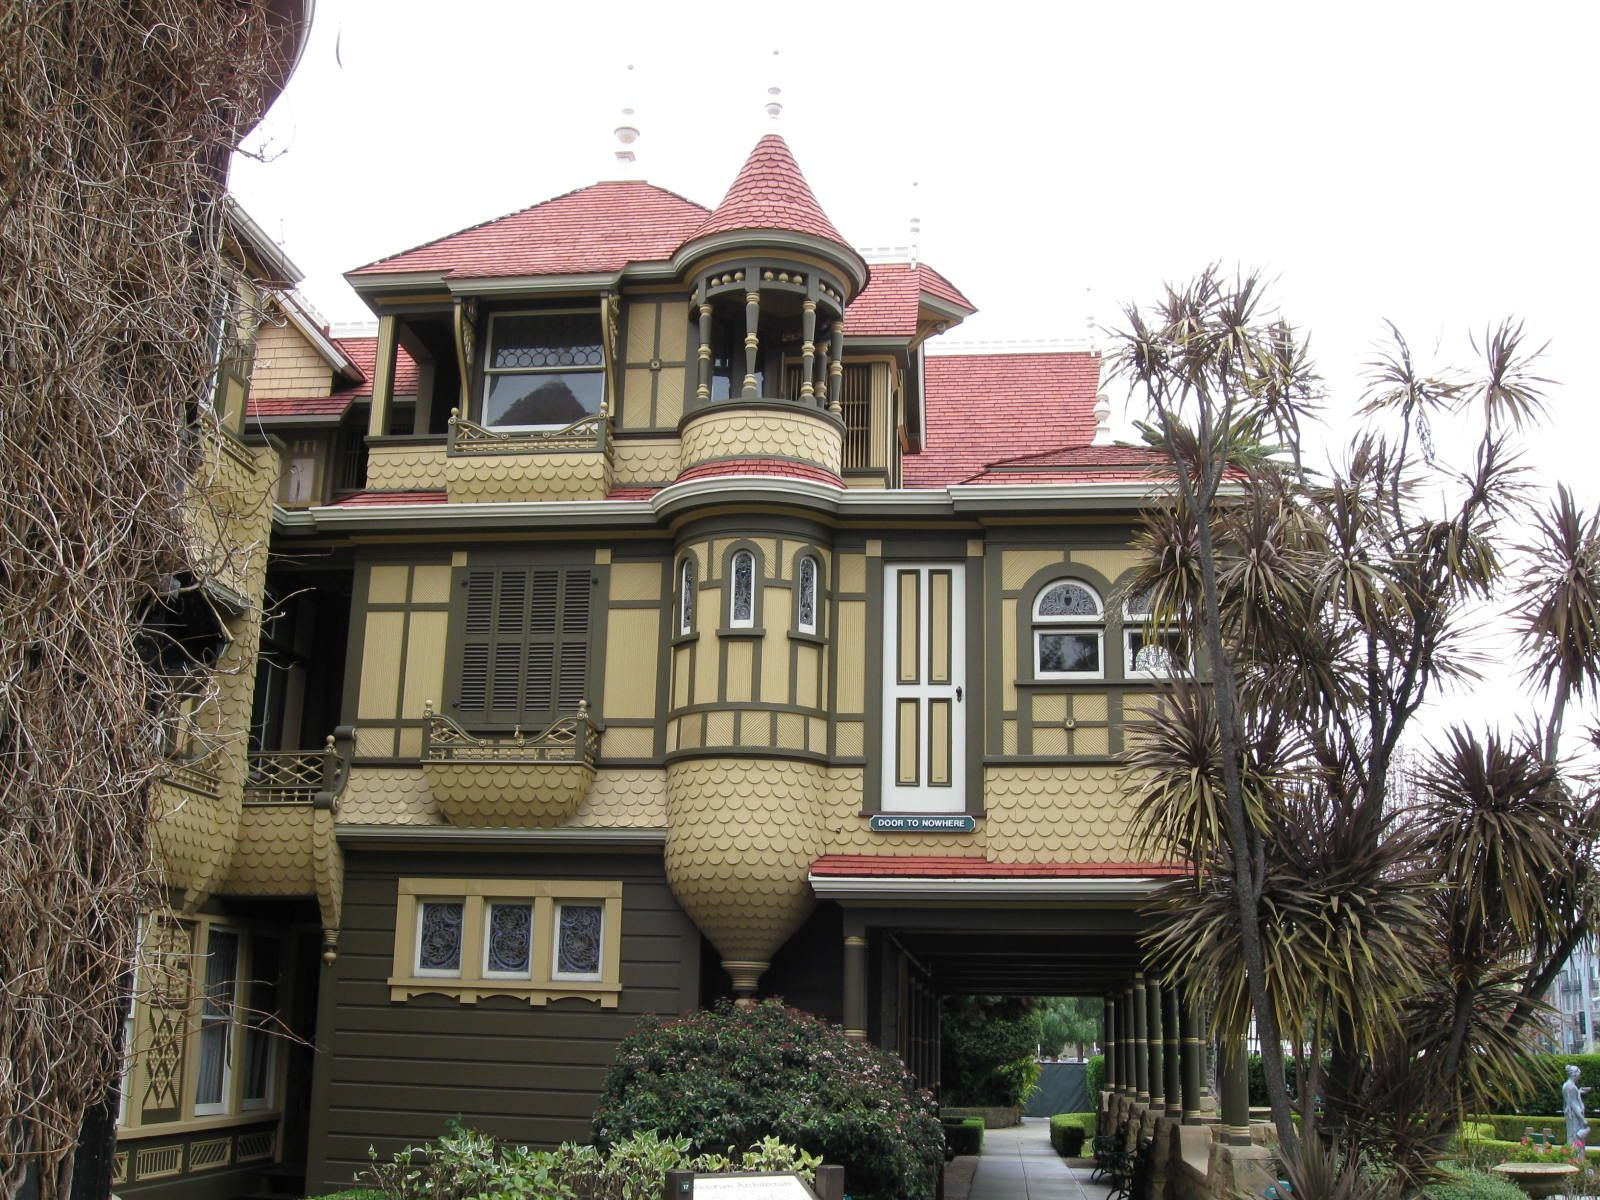 Winchester mystery house san jose california winchester mystery house victorian homes amazing